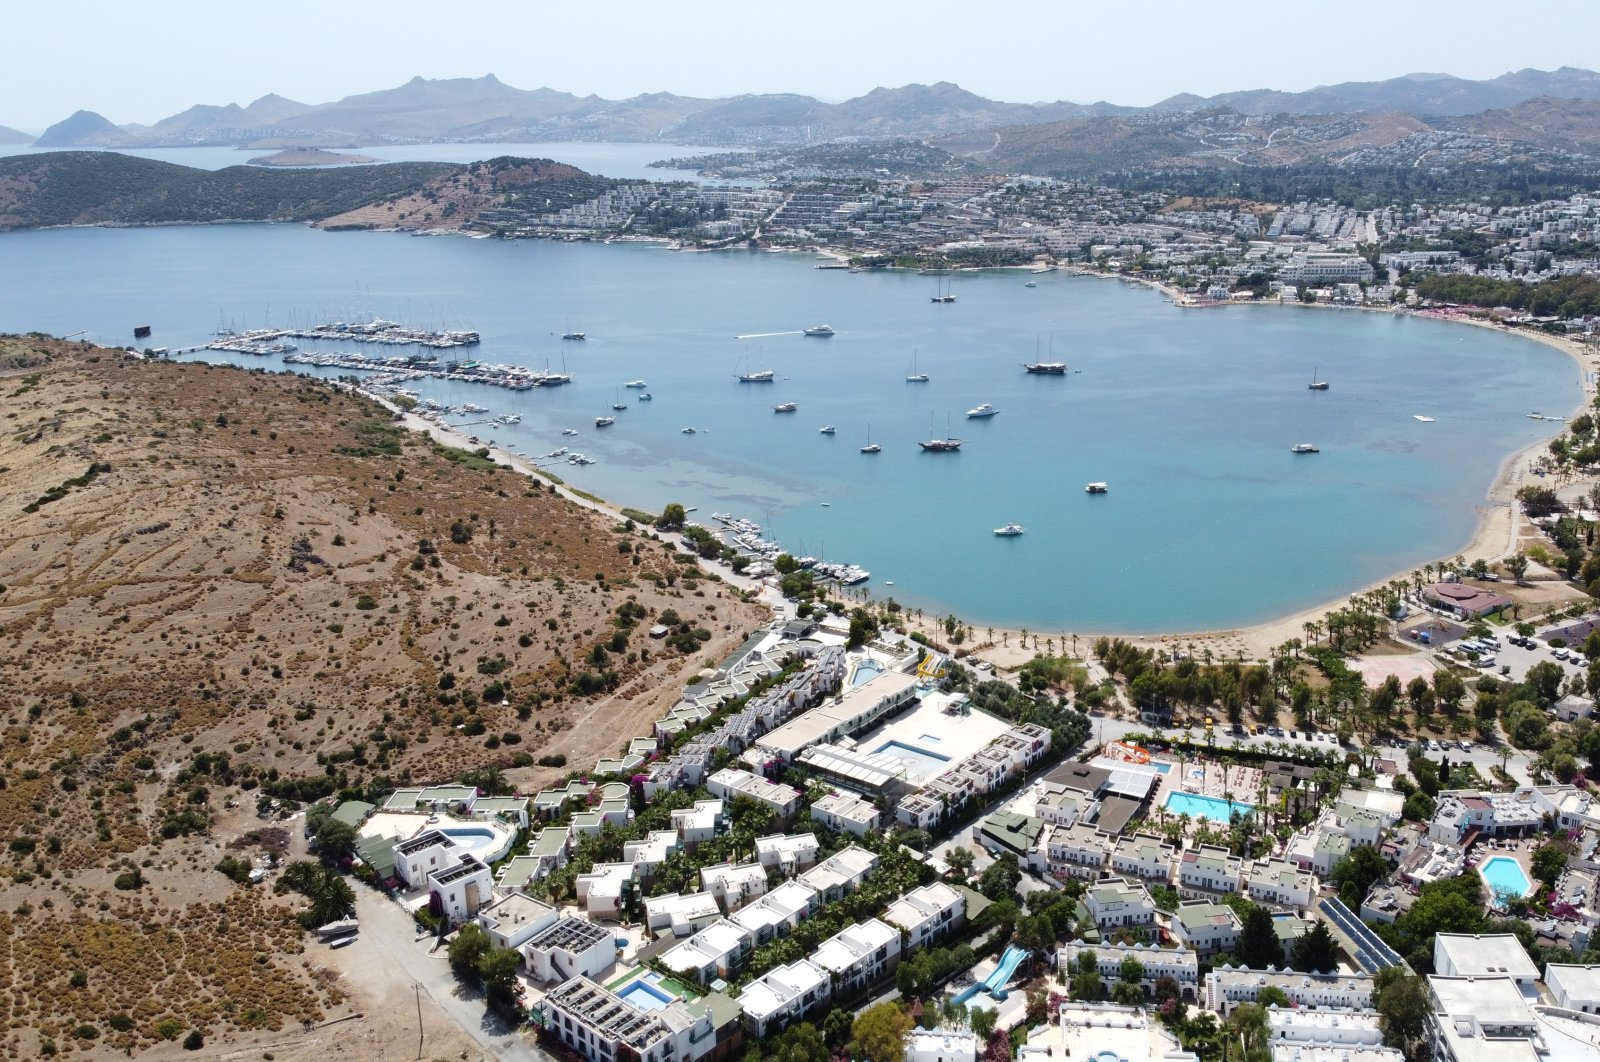 Berlin's lifting of a travel ban to several Turkish resort towns boosted the morale of tourism representatives in southern Antalya and Muğla provinces. (AA Photo)